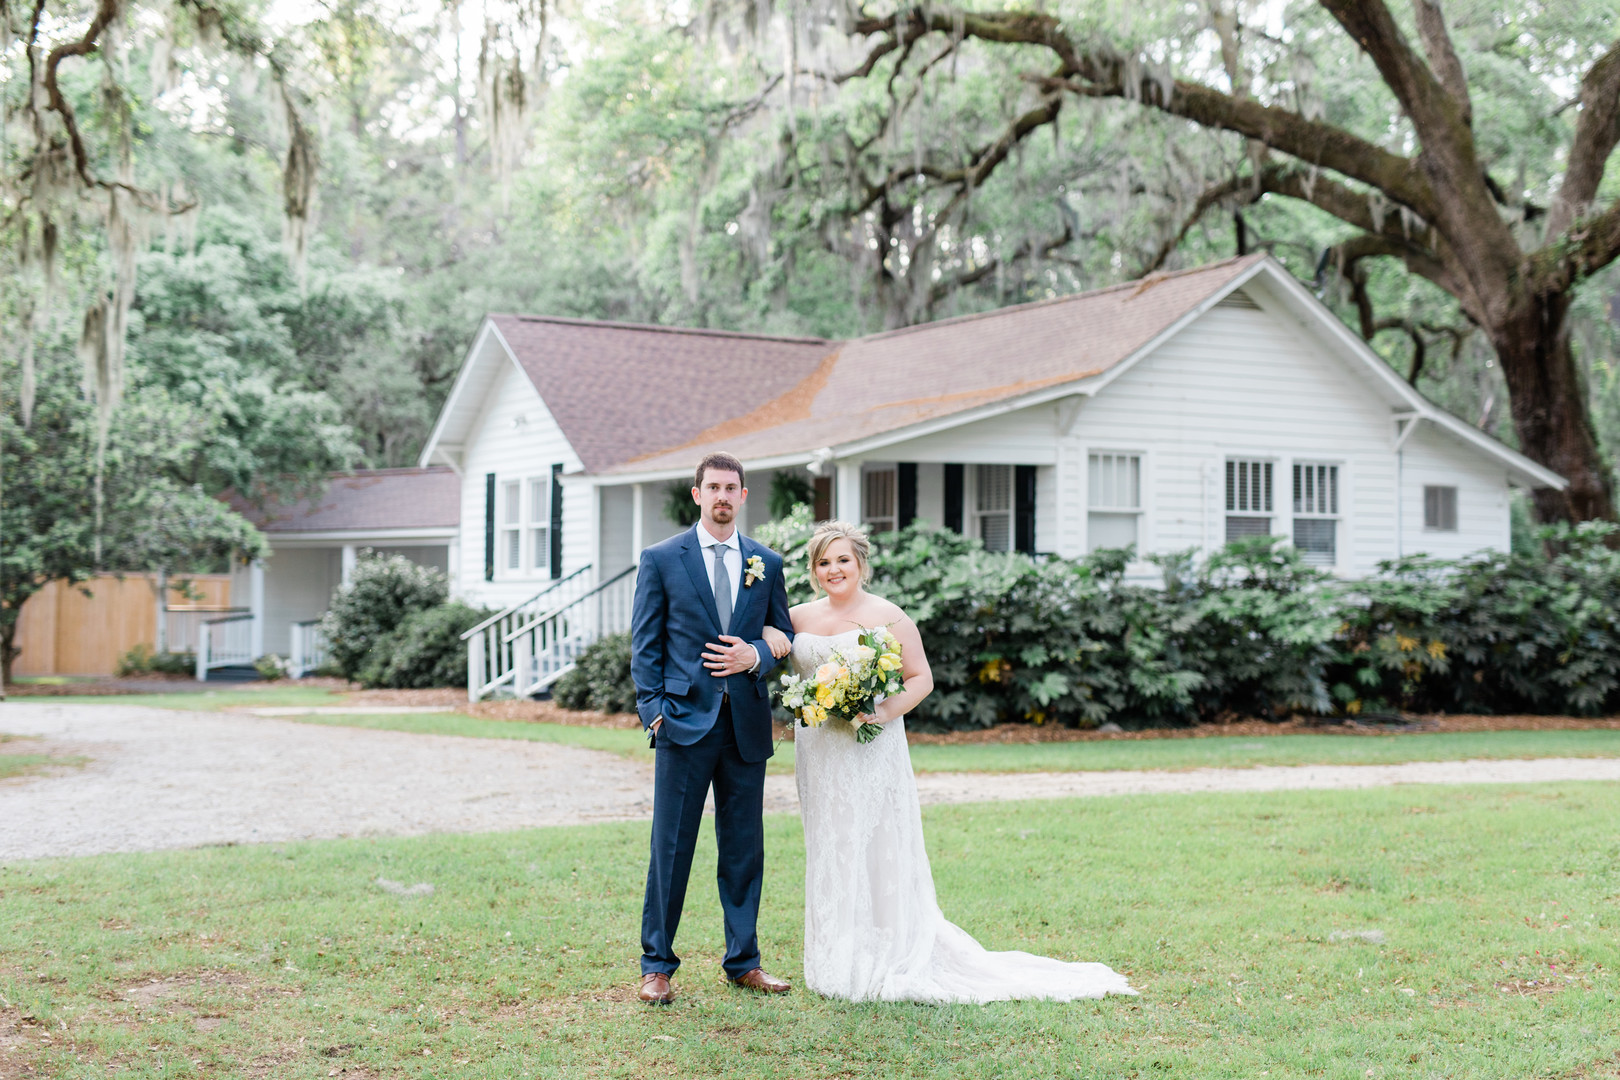 wingate-plantation-wedding-elopement-13.jpg